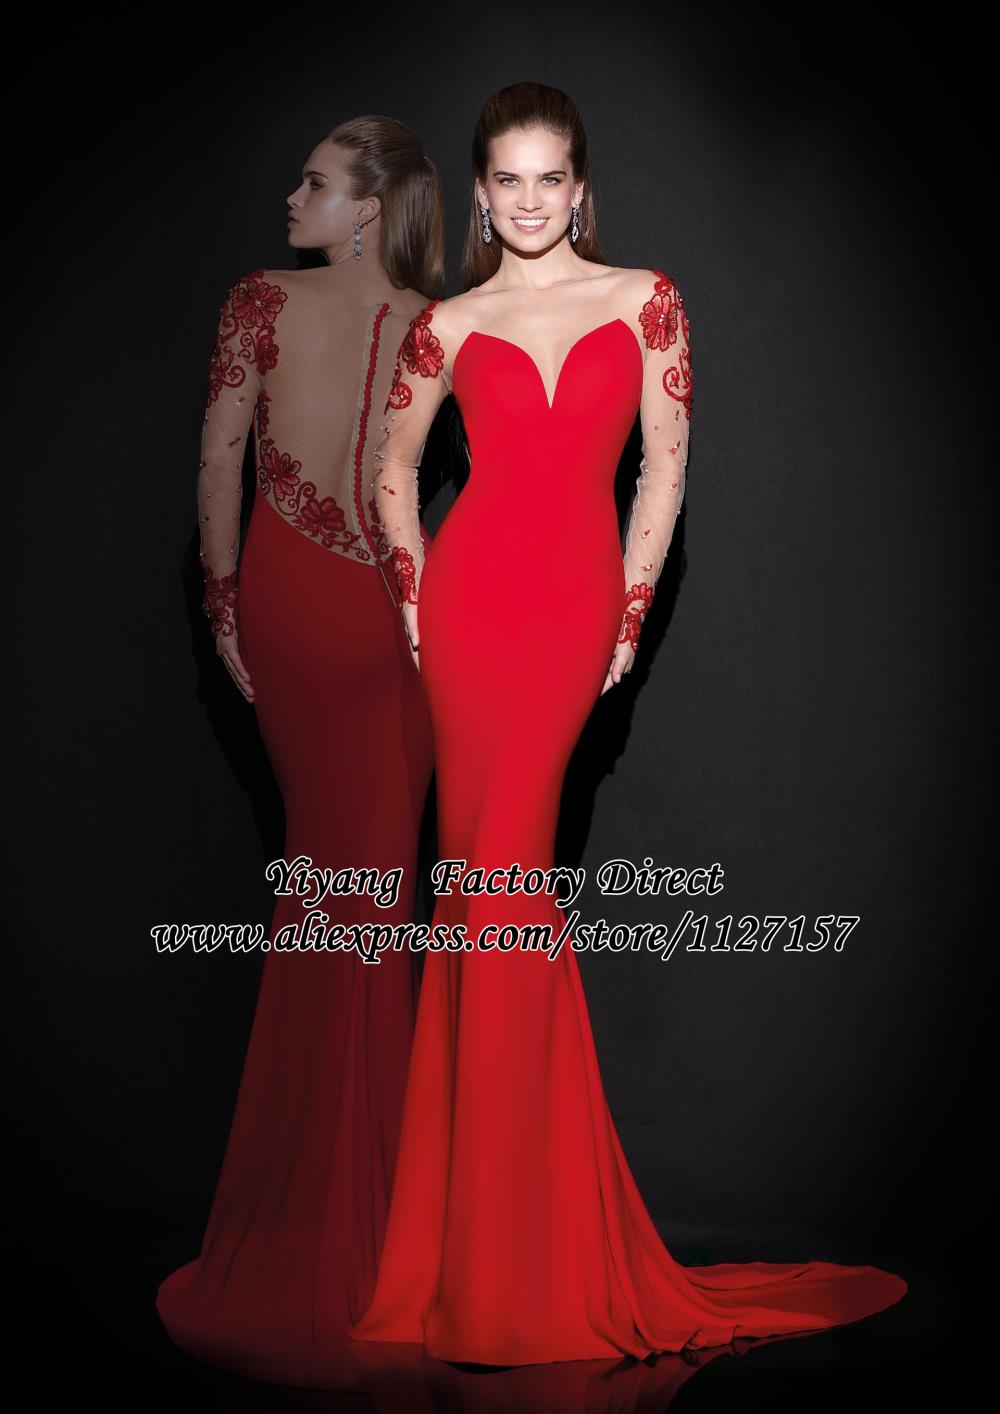 2015 Red Spandex Mermaid Beaded Appliques Long Sleeves Fishtail Evening Dress - Yiyang Wedding Factory Direct store